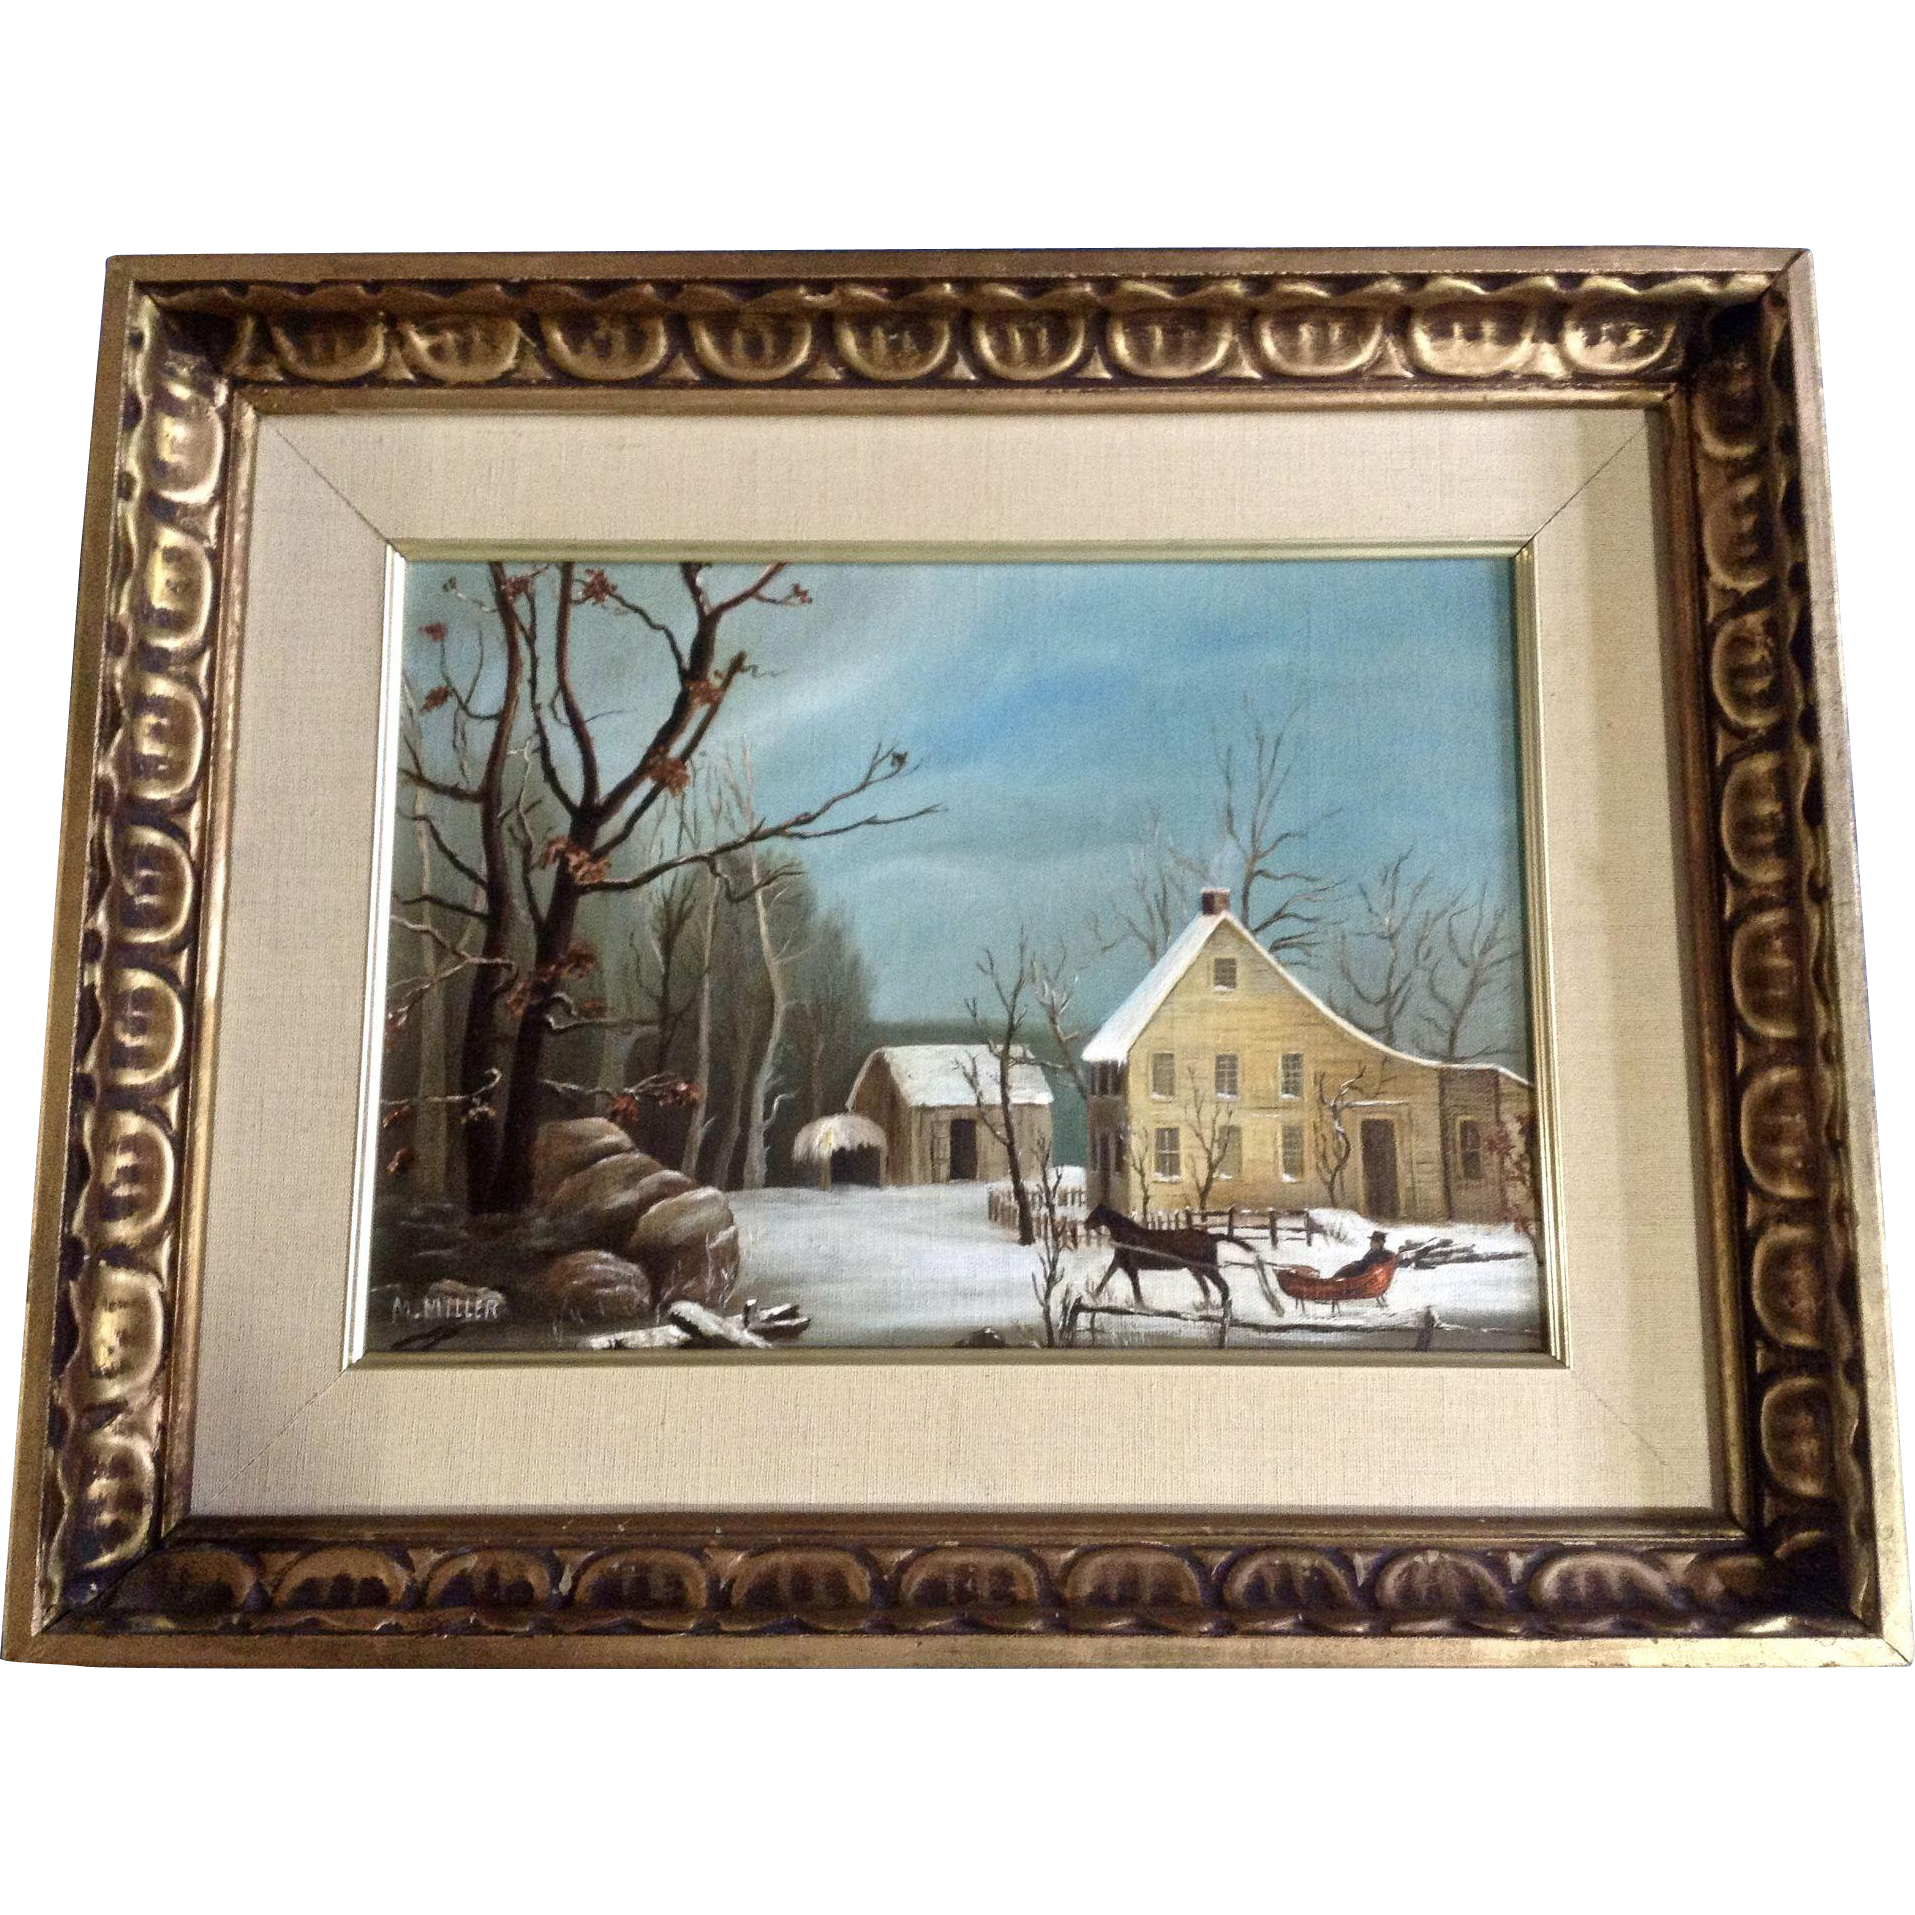 M Miller Primitive Folk Art Winter Scene Oil Painting On Canvas Signed By Artist Oil Painting On Canvas Painting Art